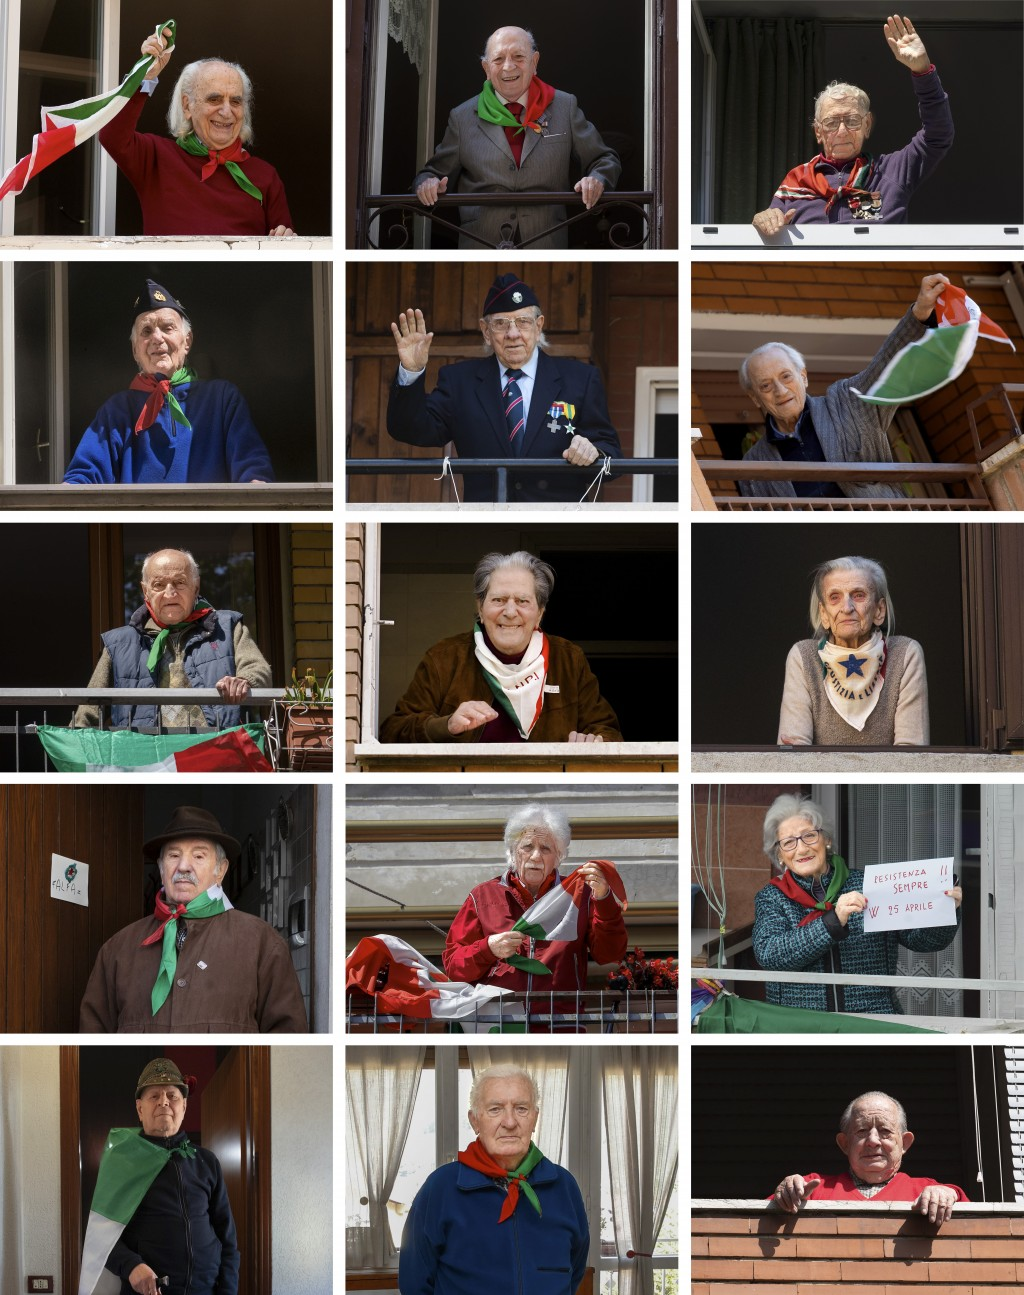 A combo of 15 images showing fifteen former Italian partisans posing at their home in several Italian cities between Thursday, April 23, and Friday, A...